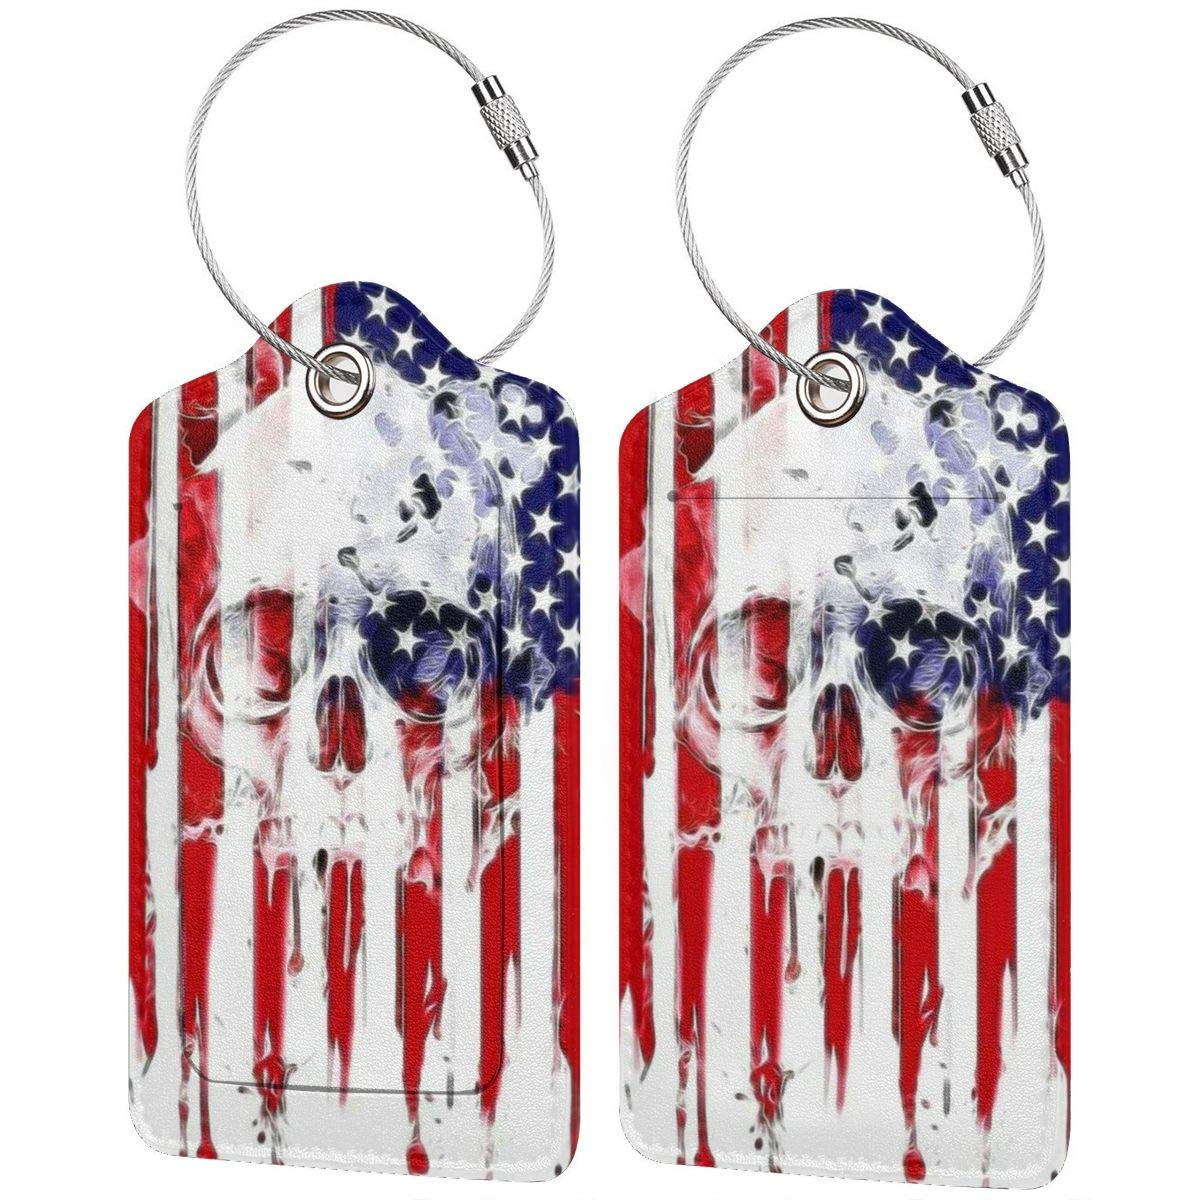 Travel Luggage Tags PU Leather Bag Tags Suitcase Baggage Label Handbag Tag With Full Back Privacy Cover Steel Loops Horror 4th Of July Sugar Skull set of 4